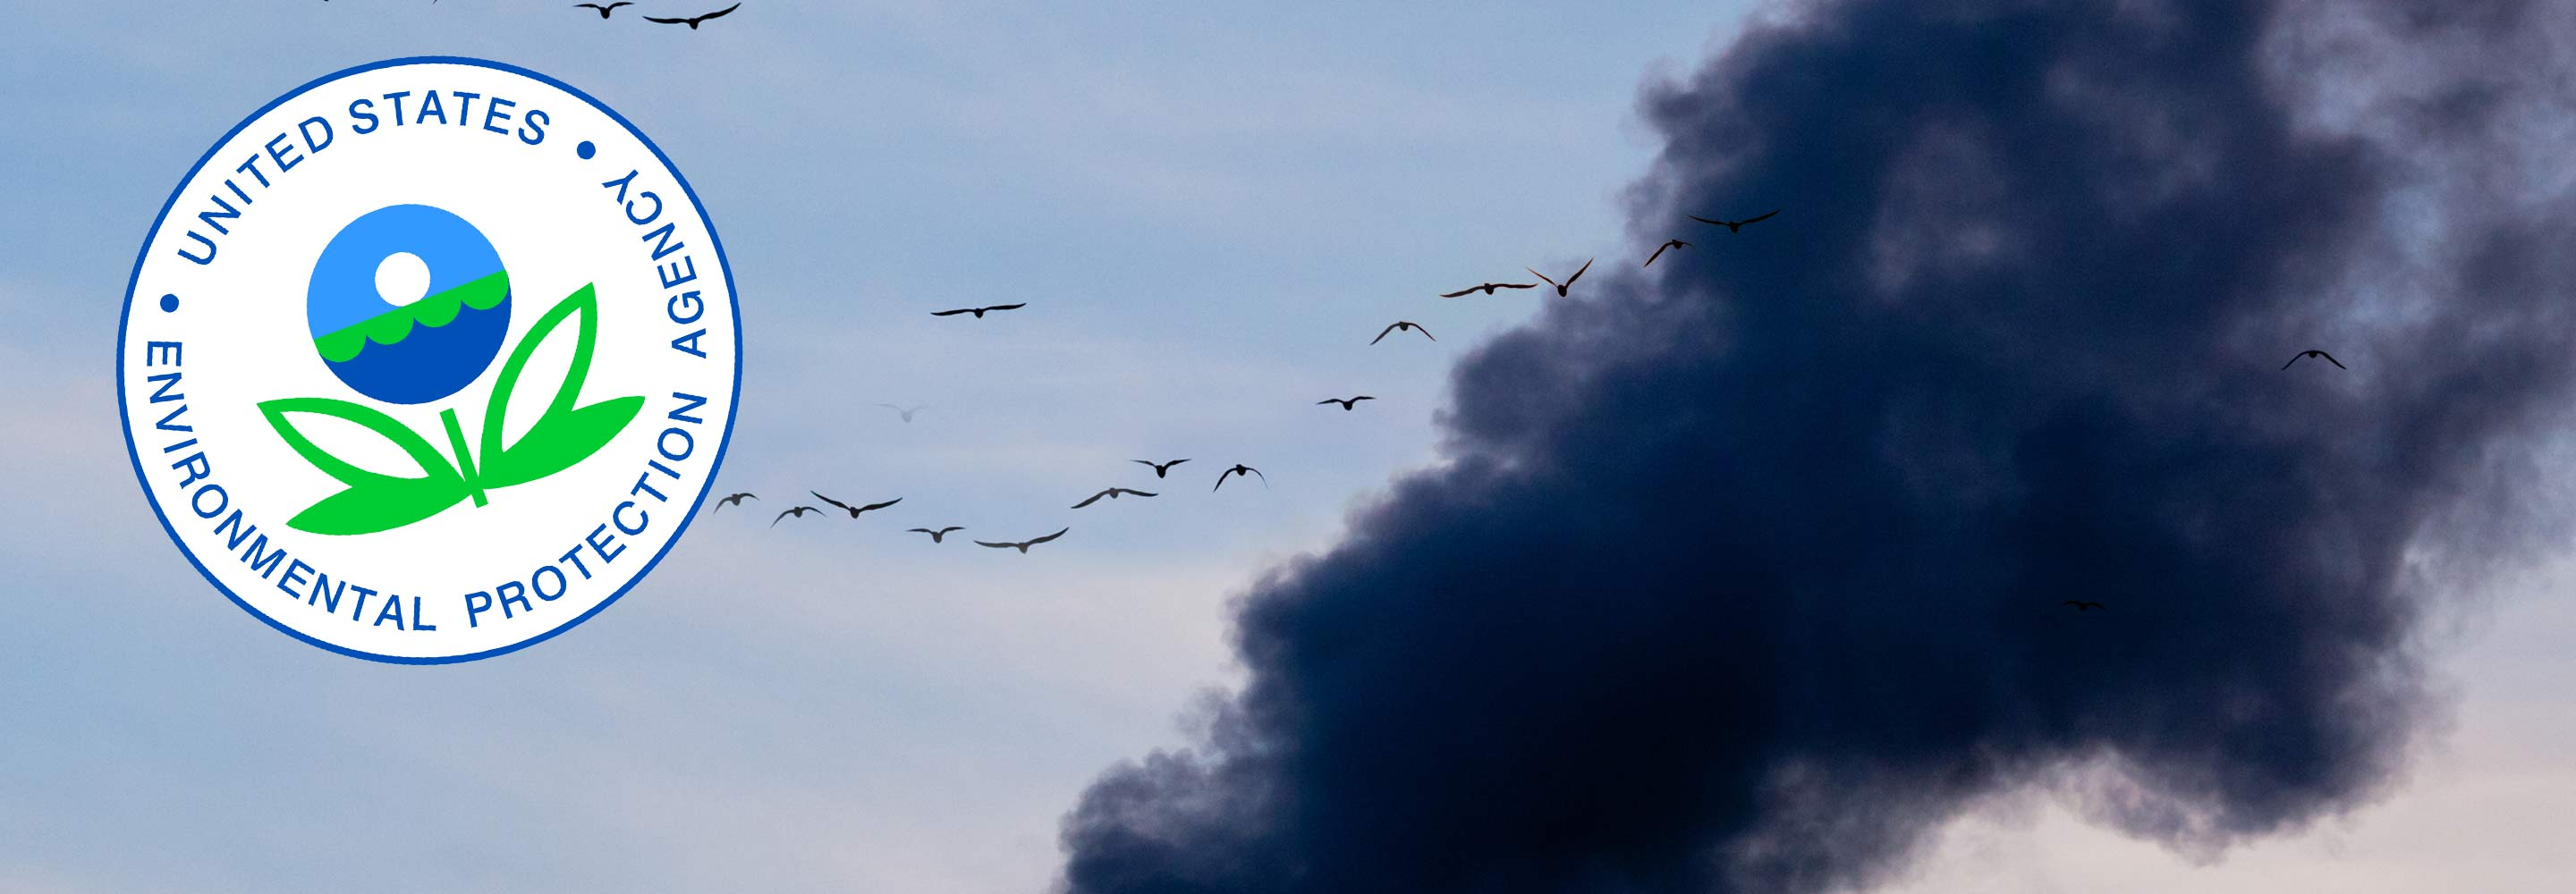 Migrating flock flying through industrial air pollution with EPA logo on corner